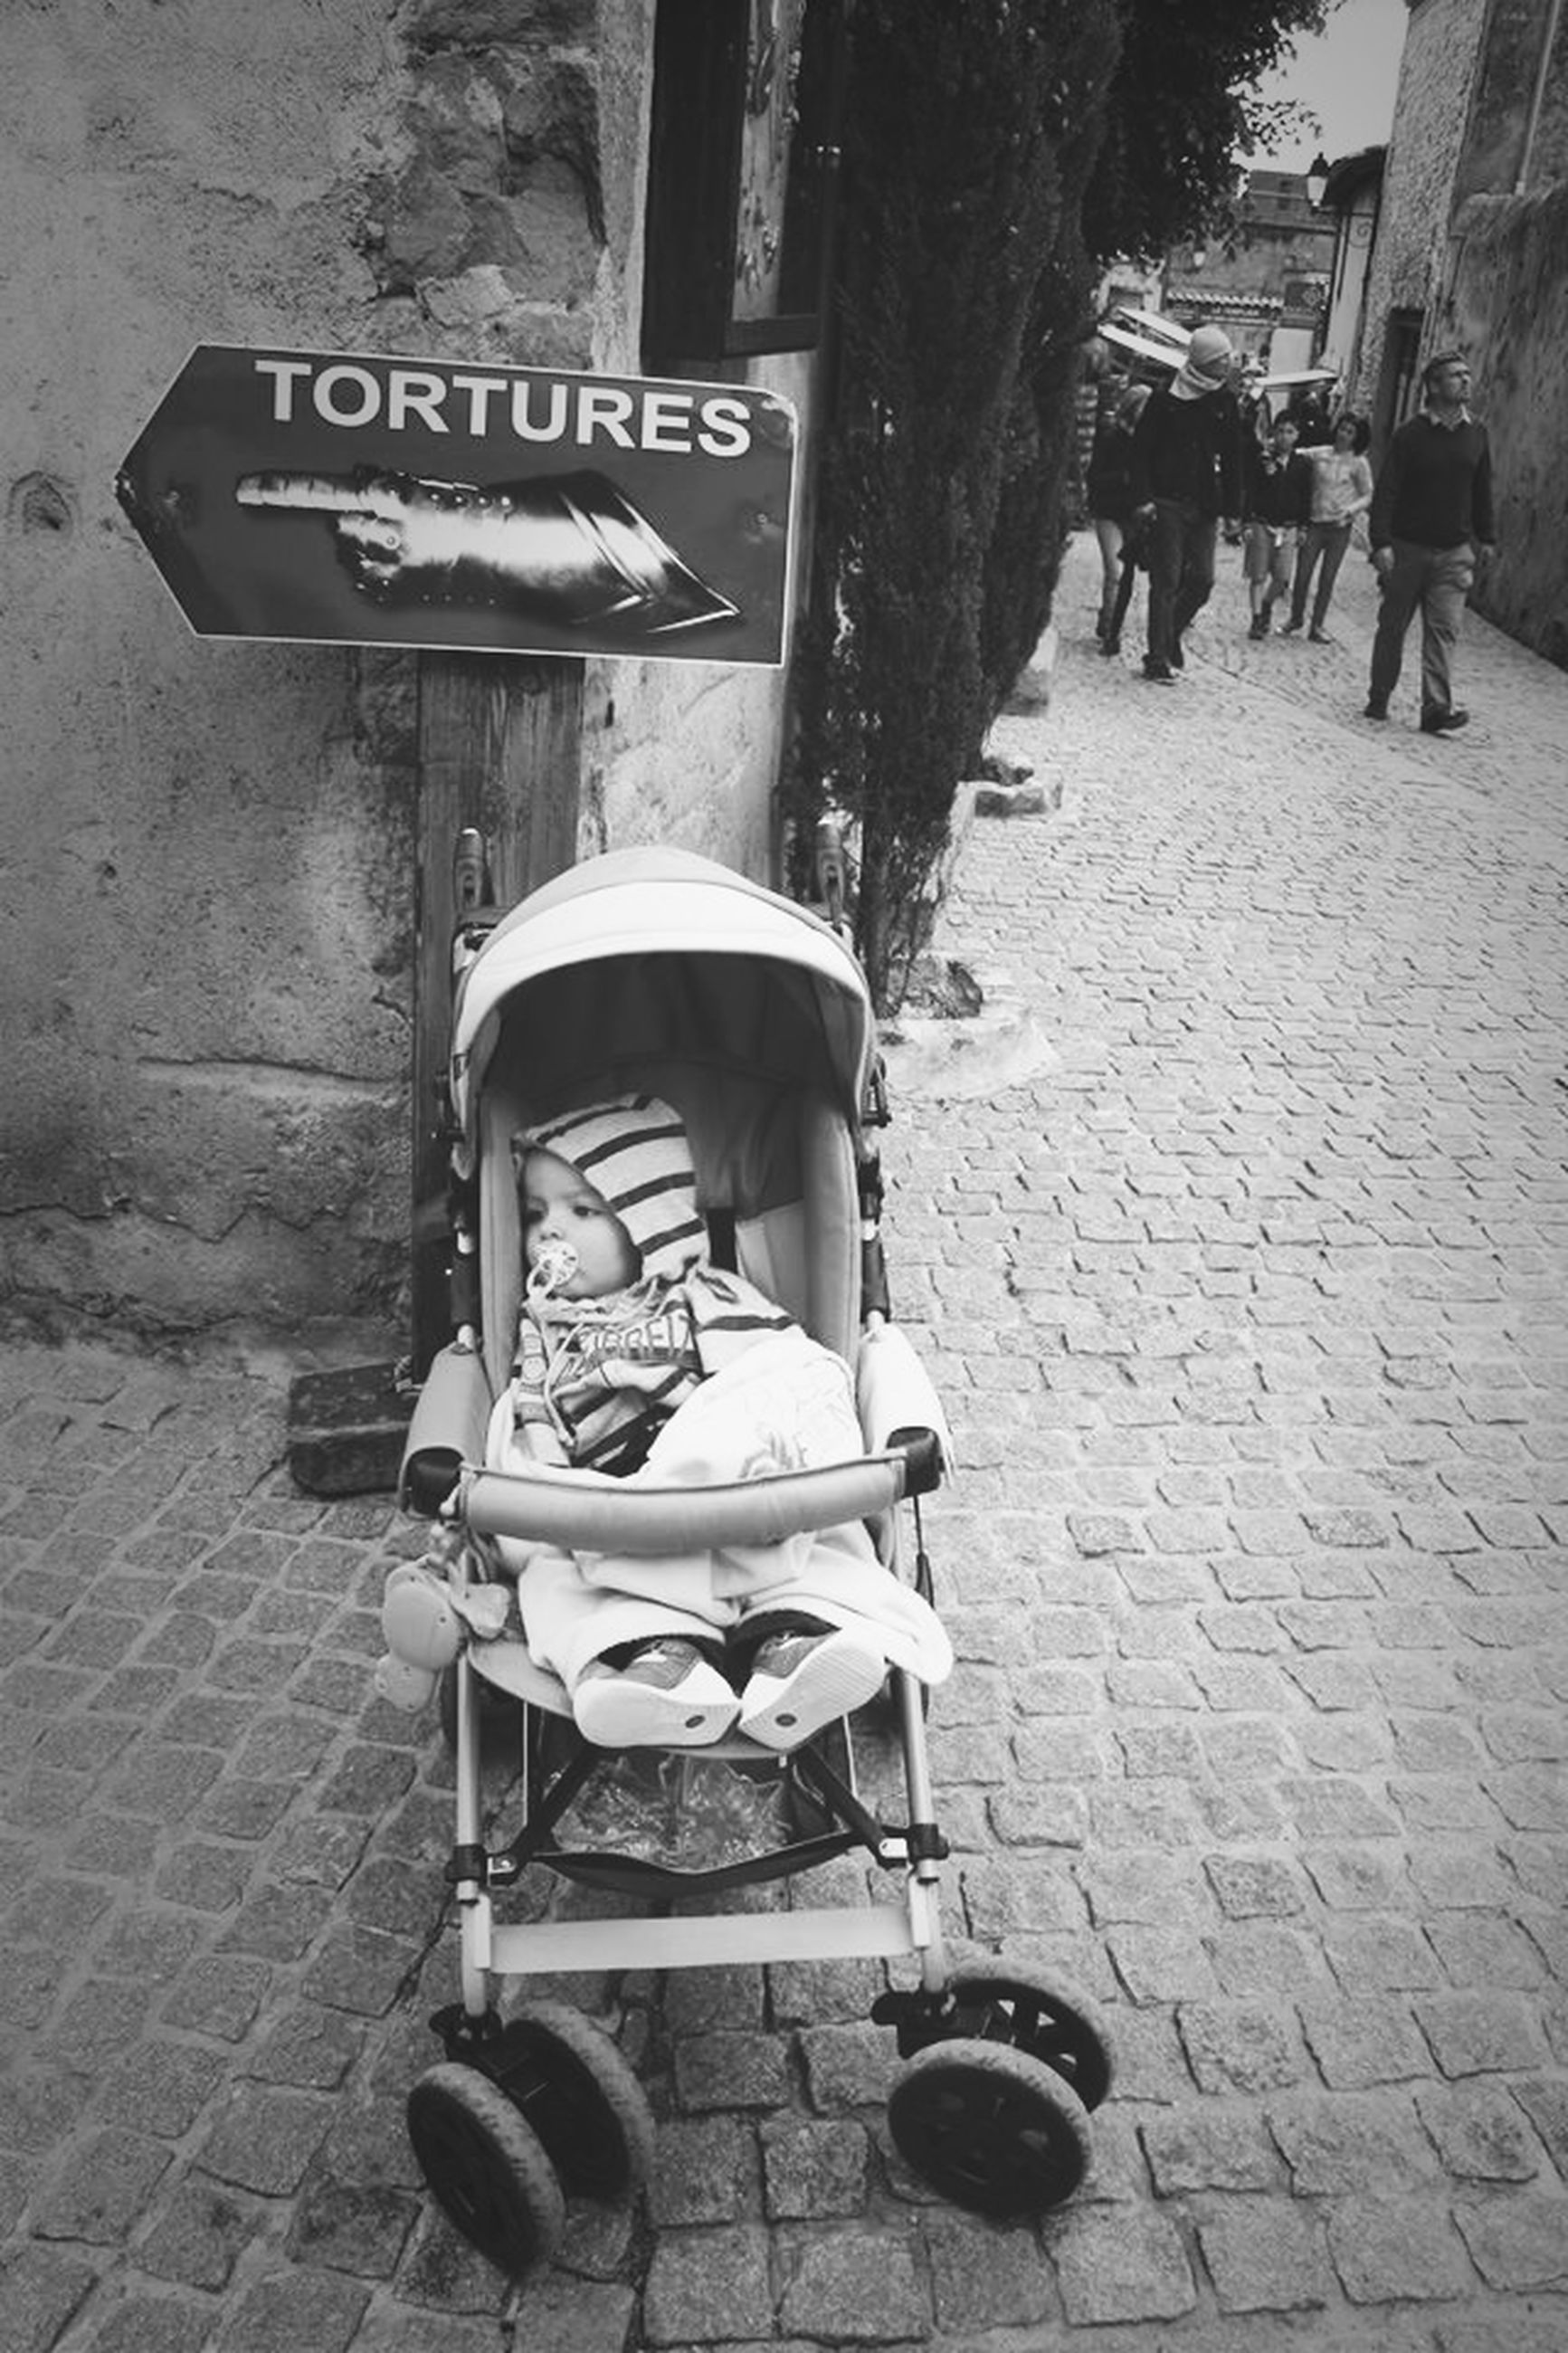 chair, street, cobblestone, text, communication, day, sidewalk, sidewalk cafe, incidental people, building exterior, outdoors, empty, built structure, city, architecture, footpath, absence, western script, cafe, table